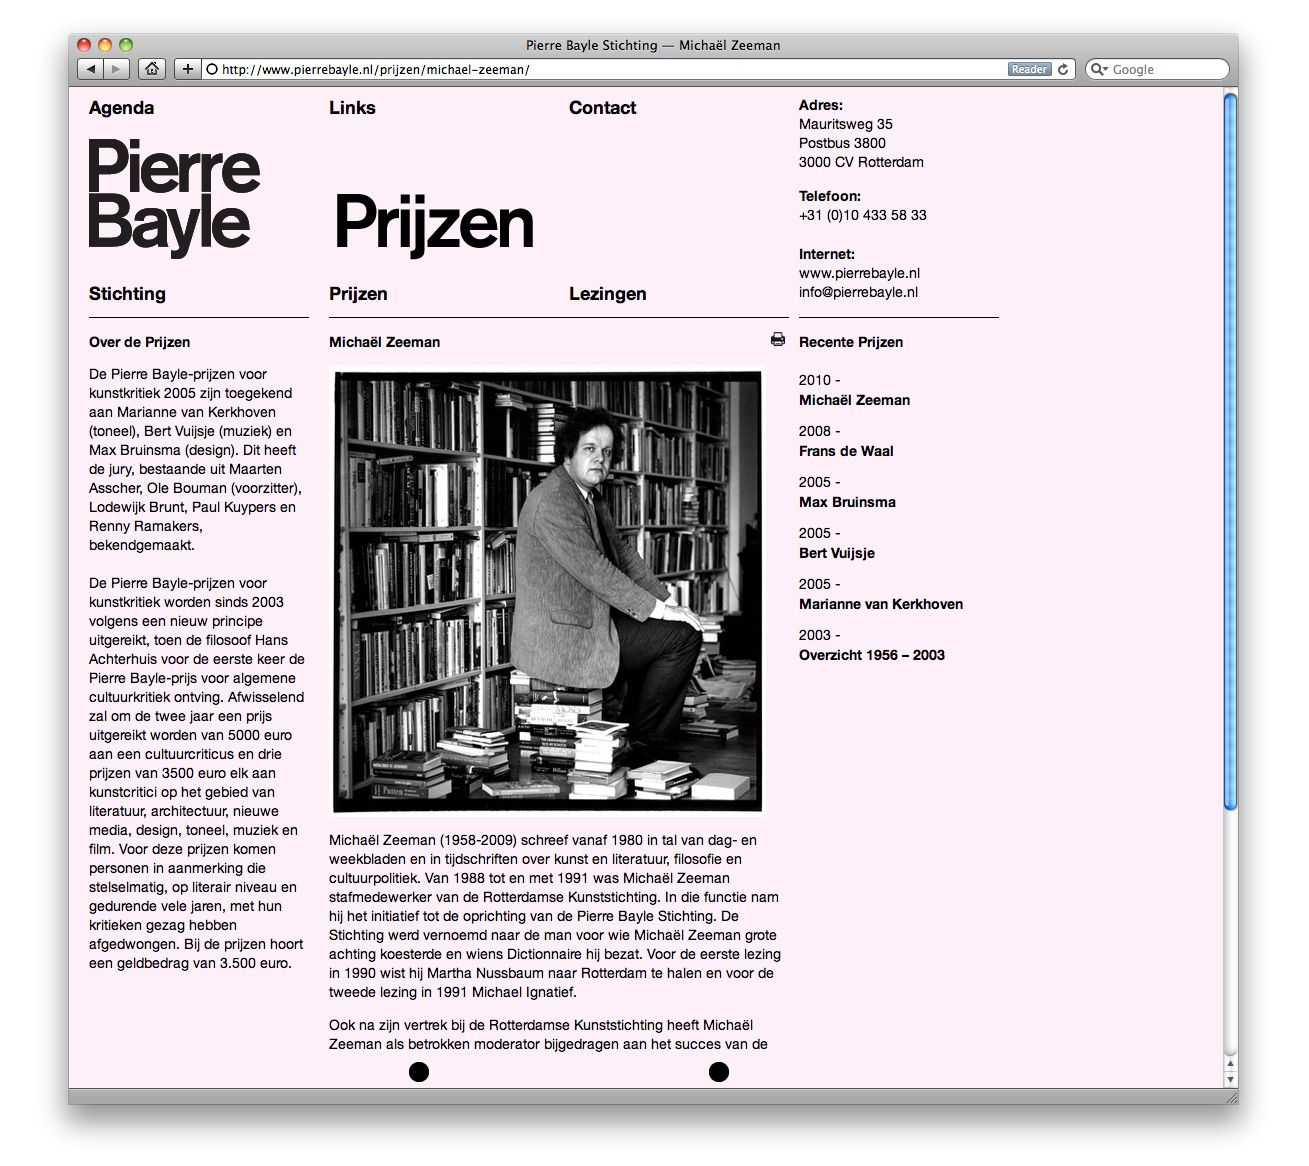 Httpalmostmodernpierre bayle website layout design structured anarchy almost modern designs and creates printed matter based in rotterdam the netherlands voltagebd Gallery